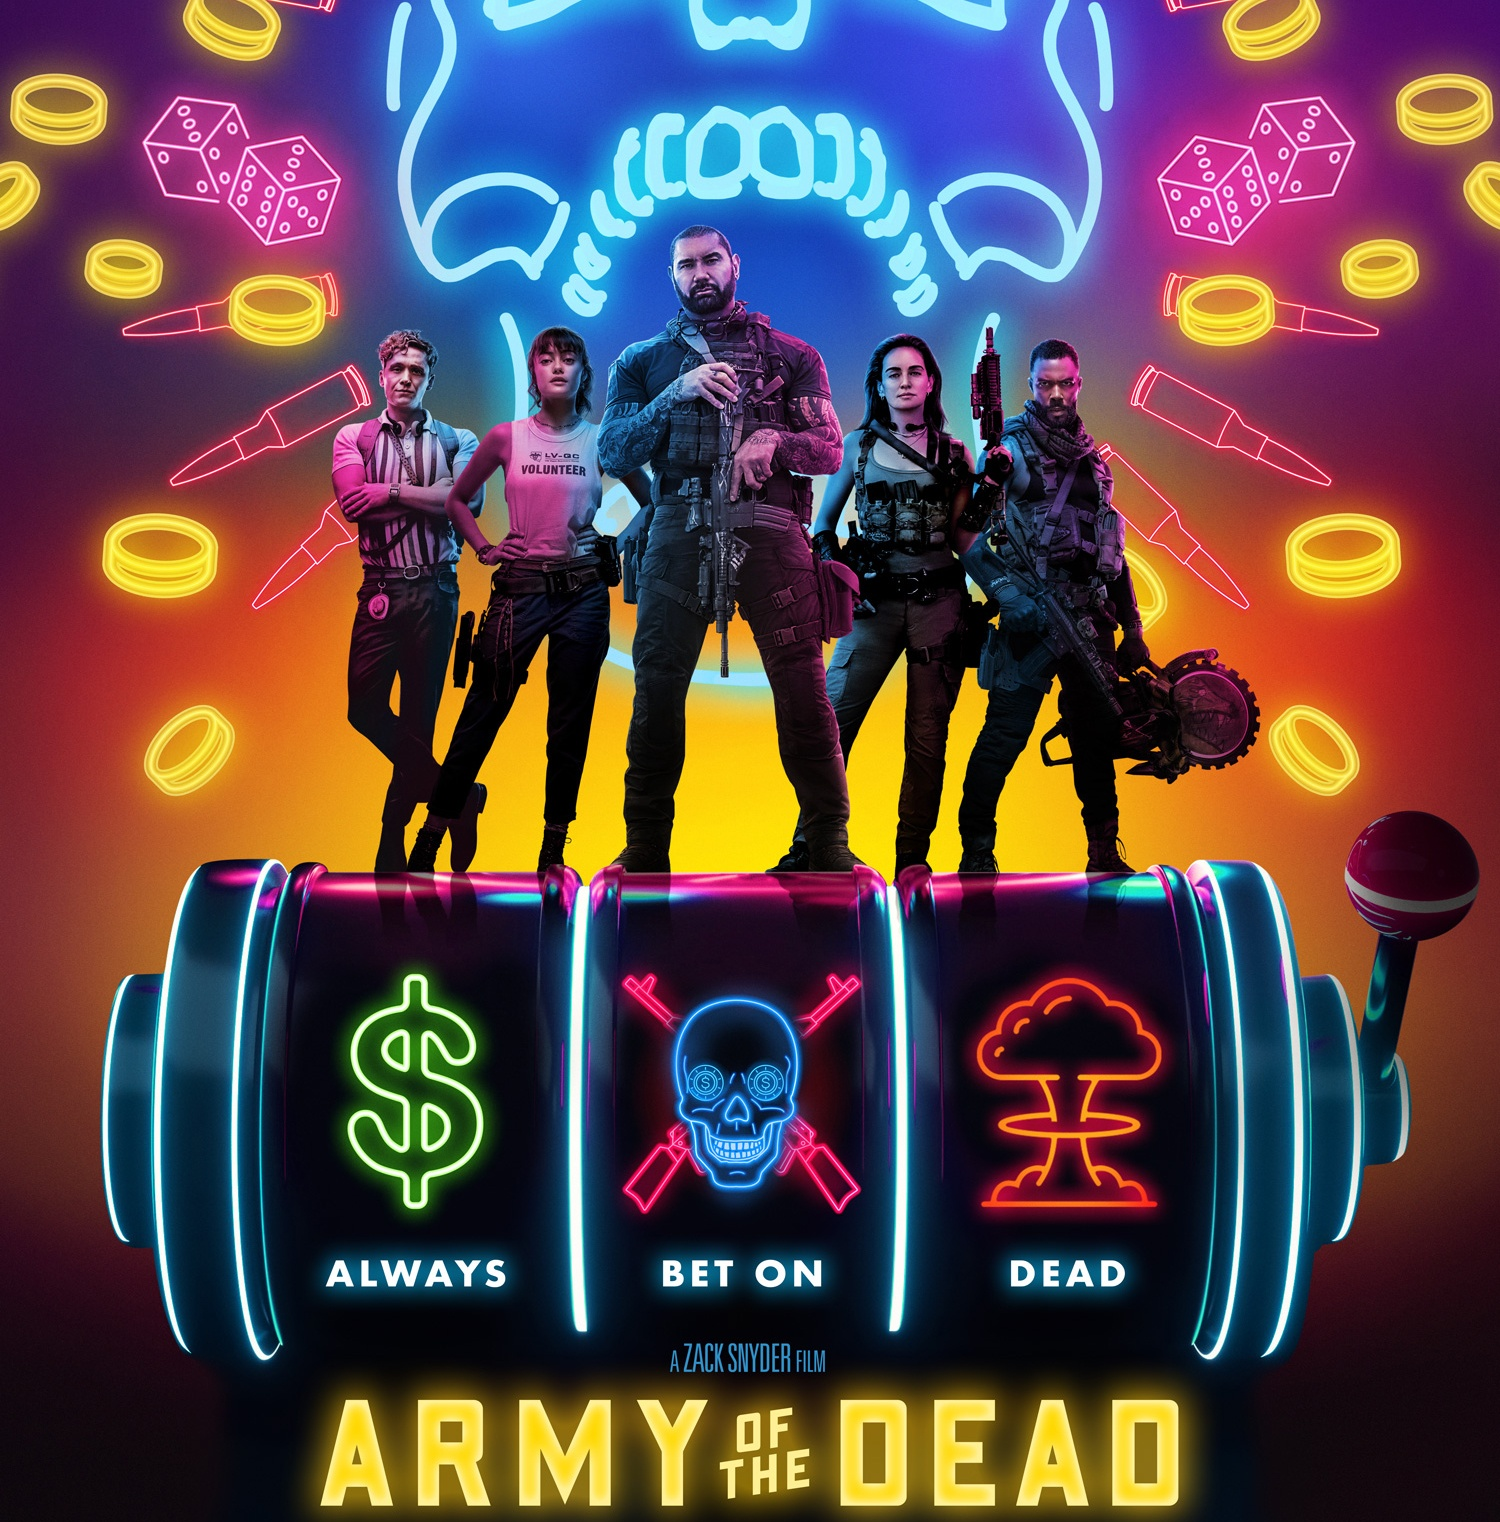 Army of the Dead Review - Poetic Dustbin